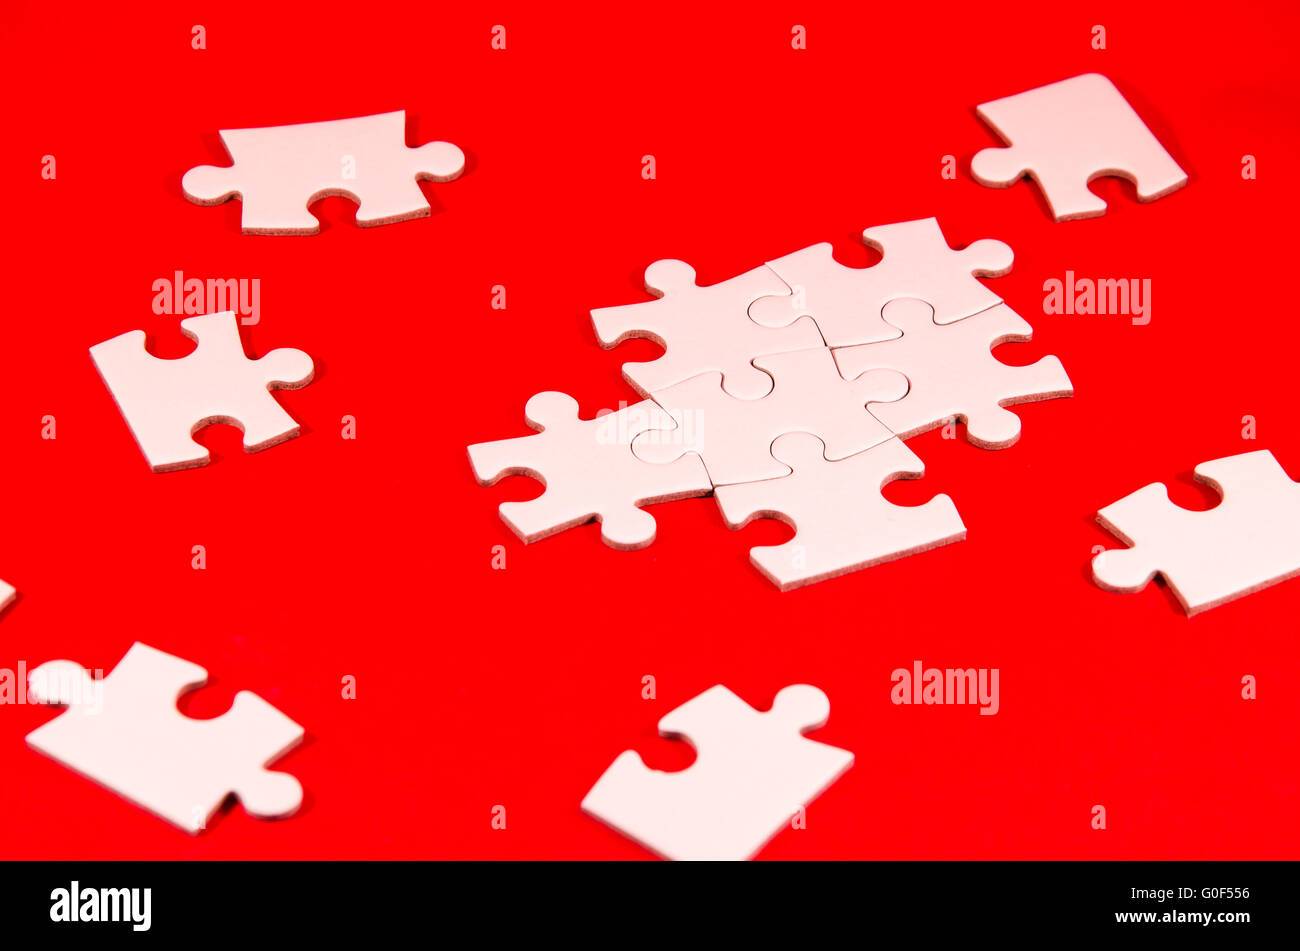 still life with a white jigsaw/puzzle incomplete over a red background, symbol of problem solving - Stock Image